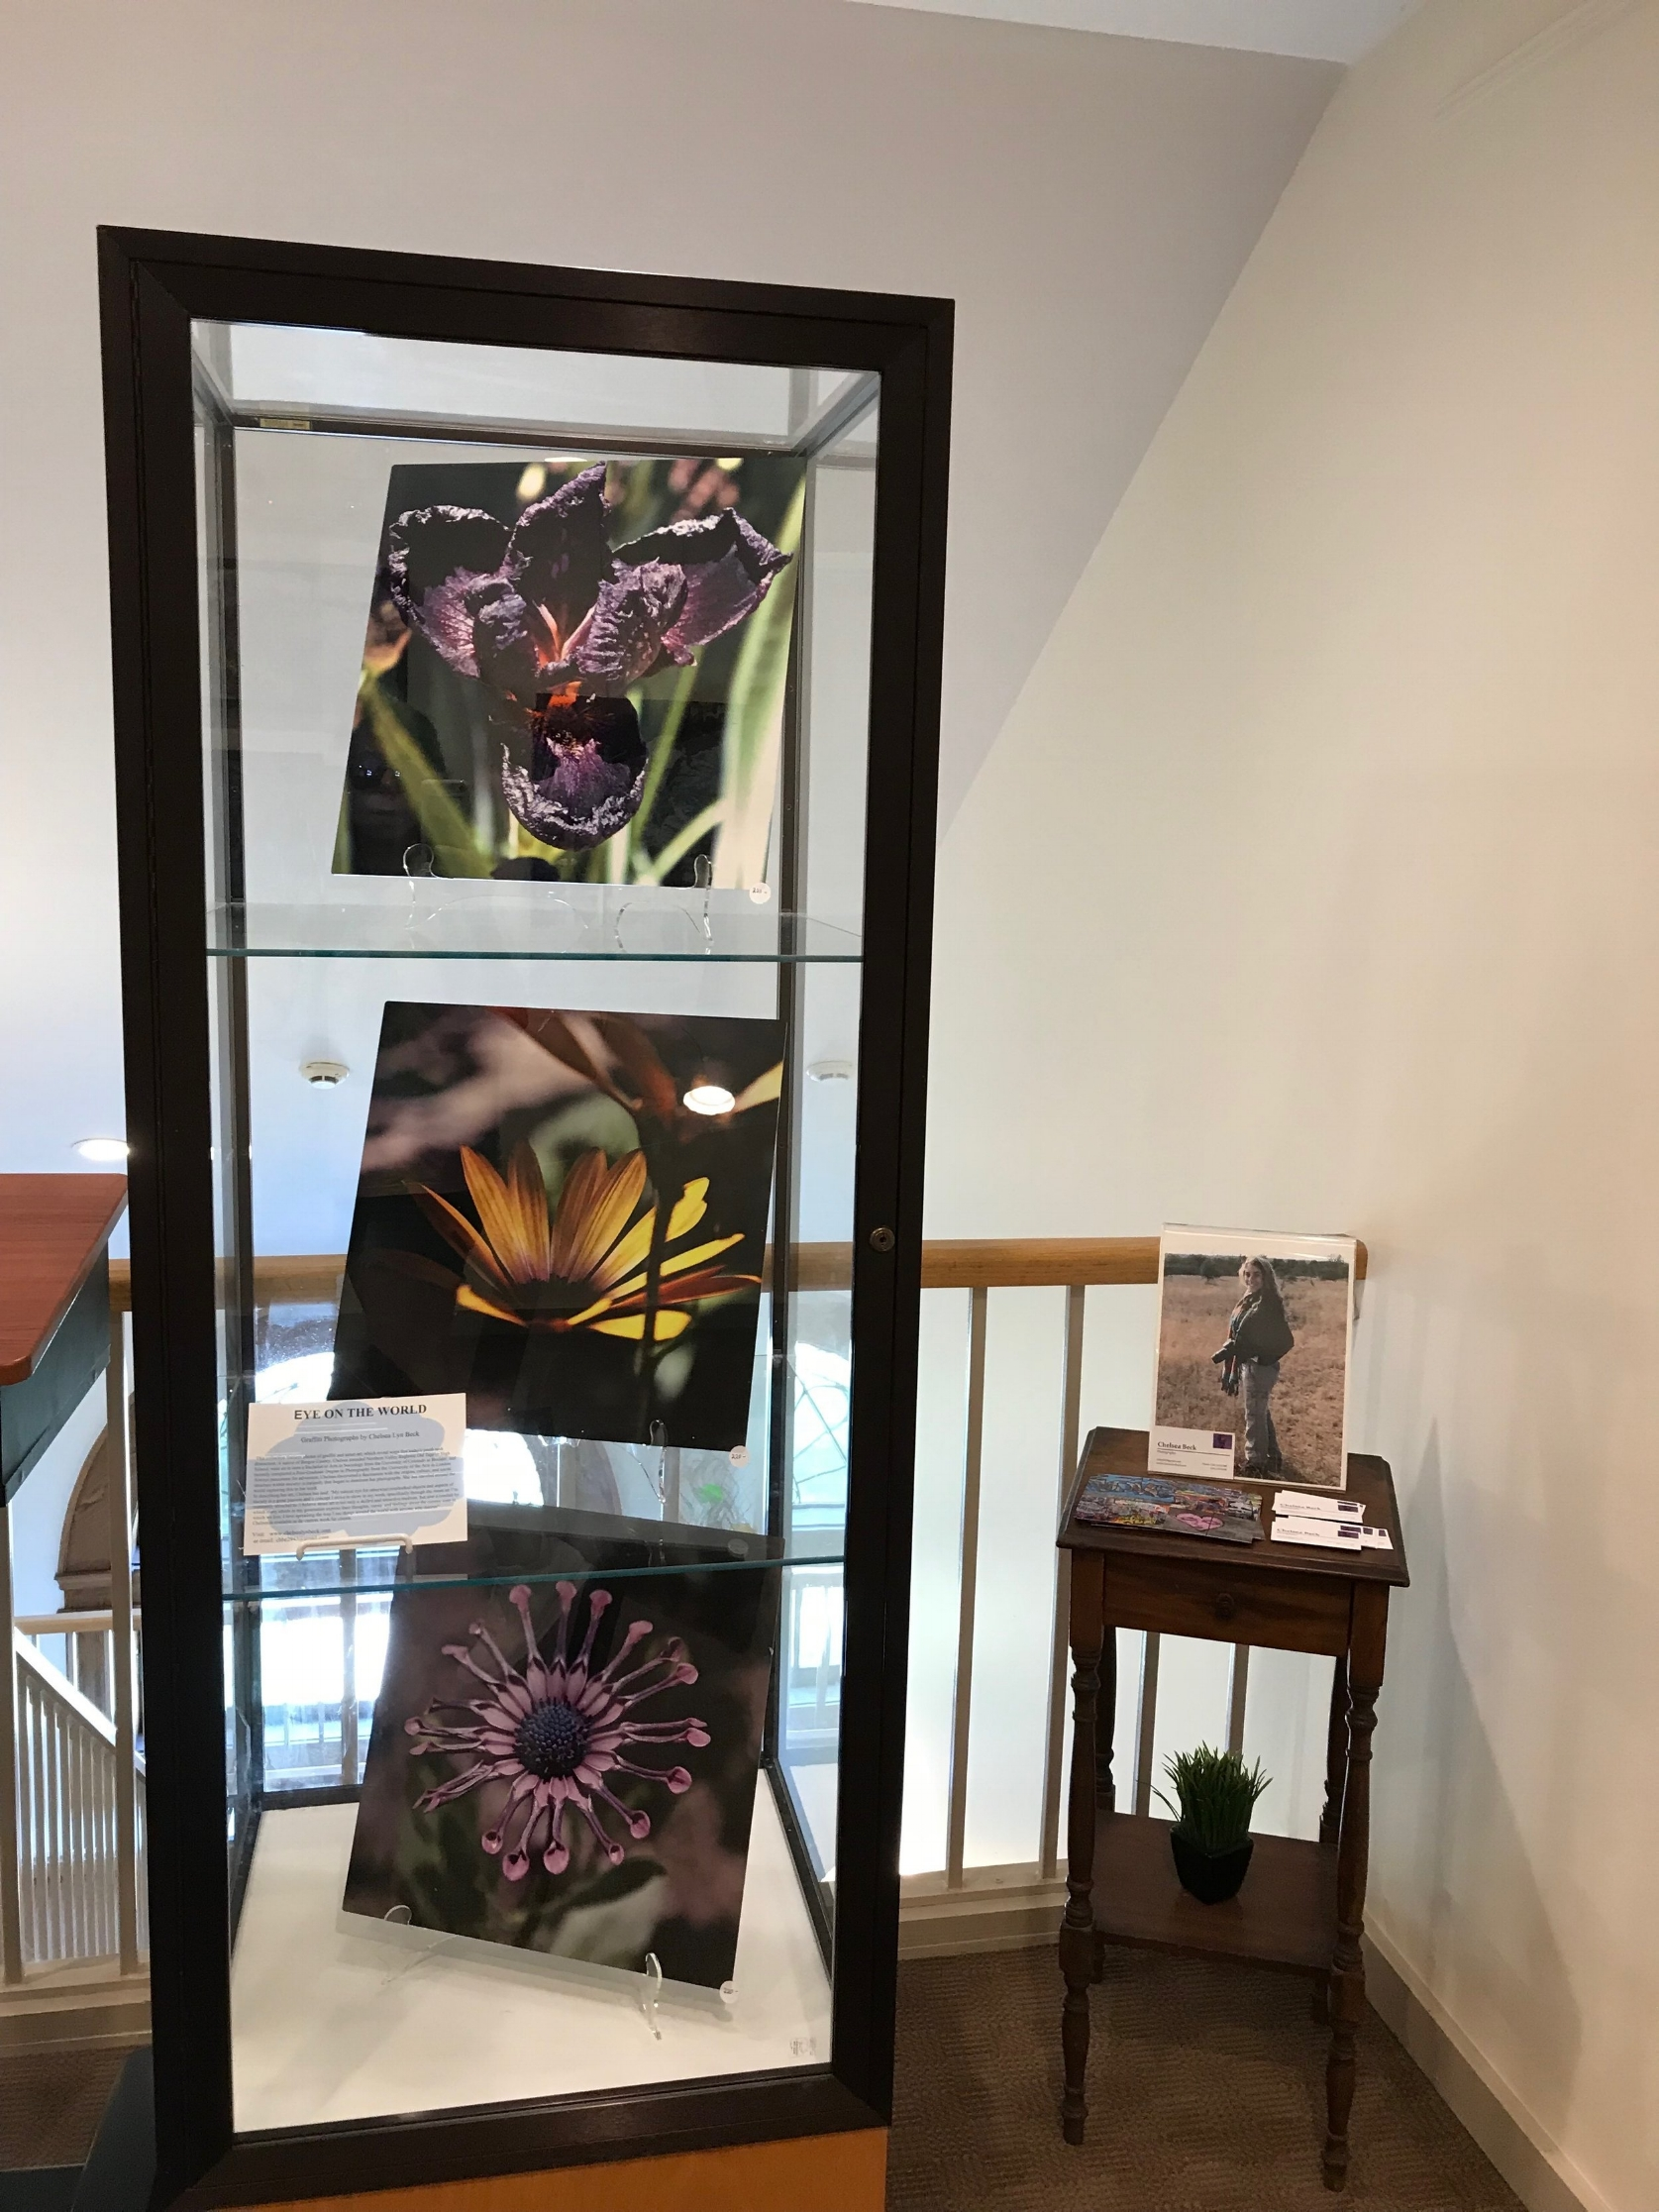 "- Top-of-the-Stairs Art Gallery""Flowers of the Backstreets""Orangeburg, New YorkOctober 2018"